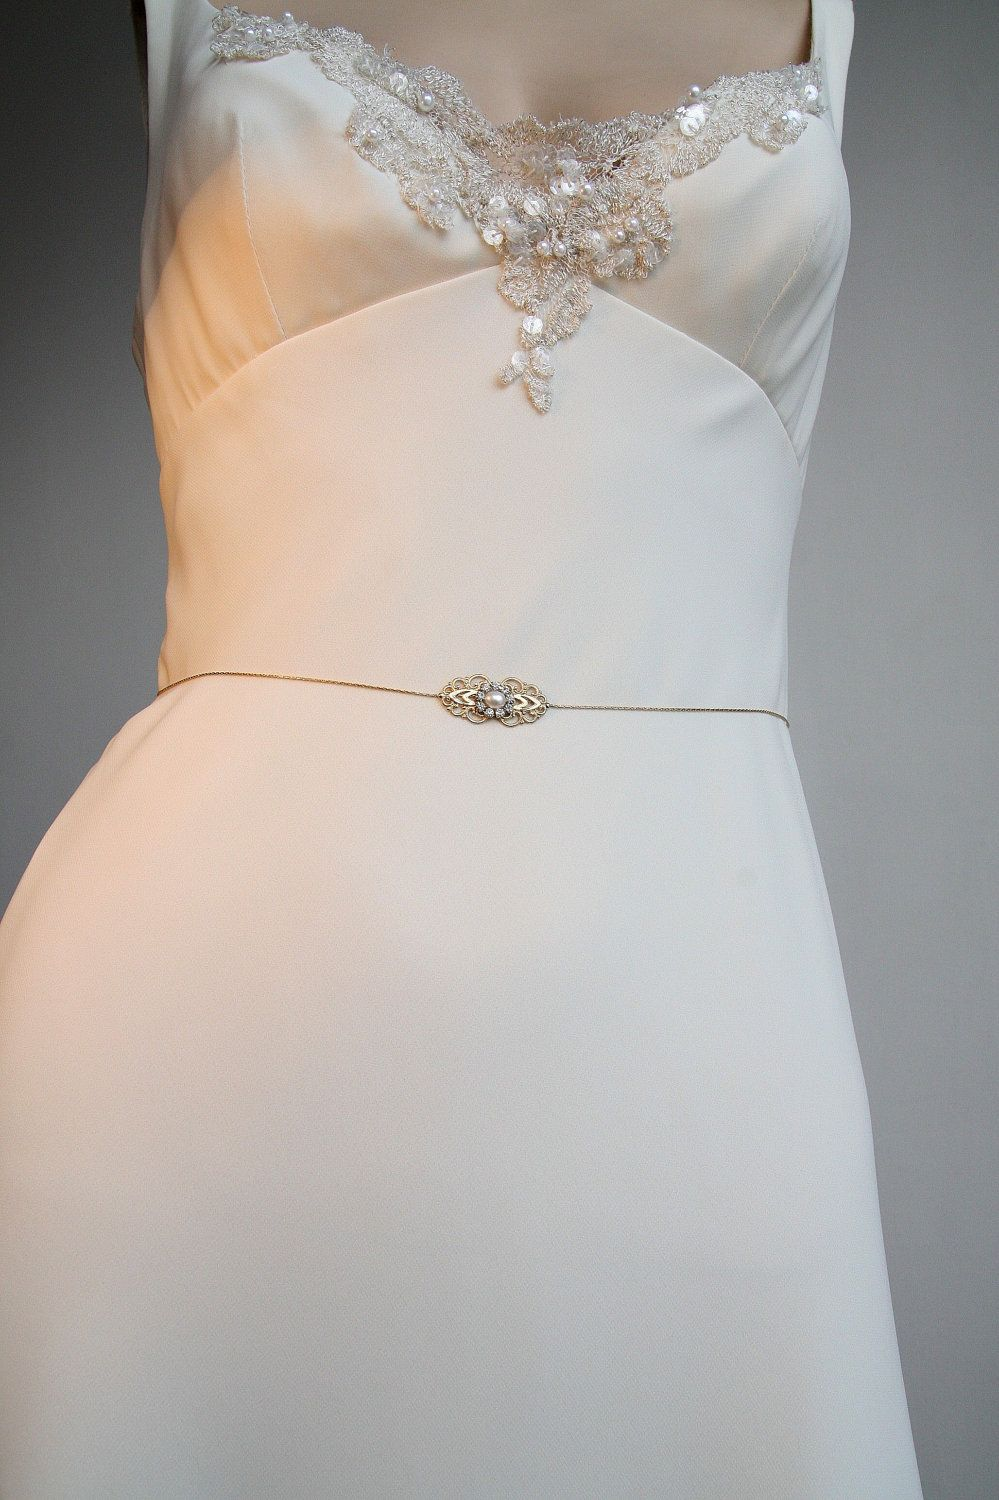 Gold Bridal Belt Sash Rhinestone Crystal Pearls Victorian Vintage Style Jewelry Wedding Dress